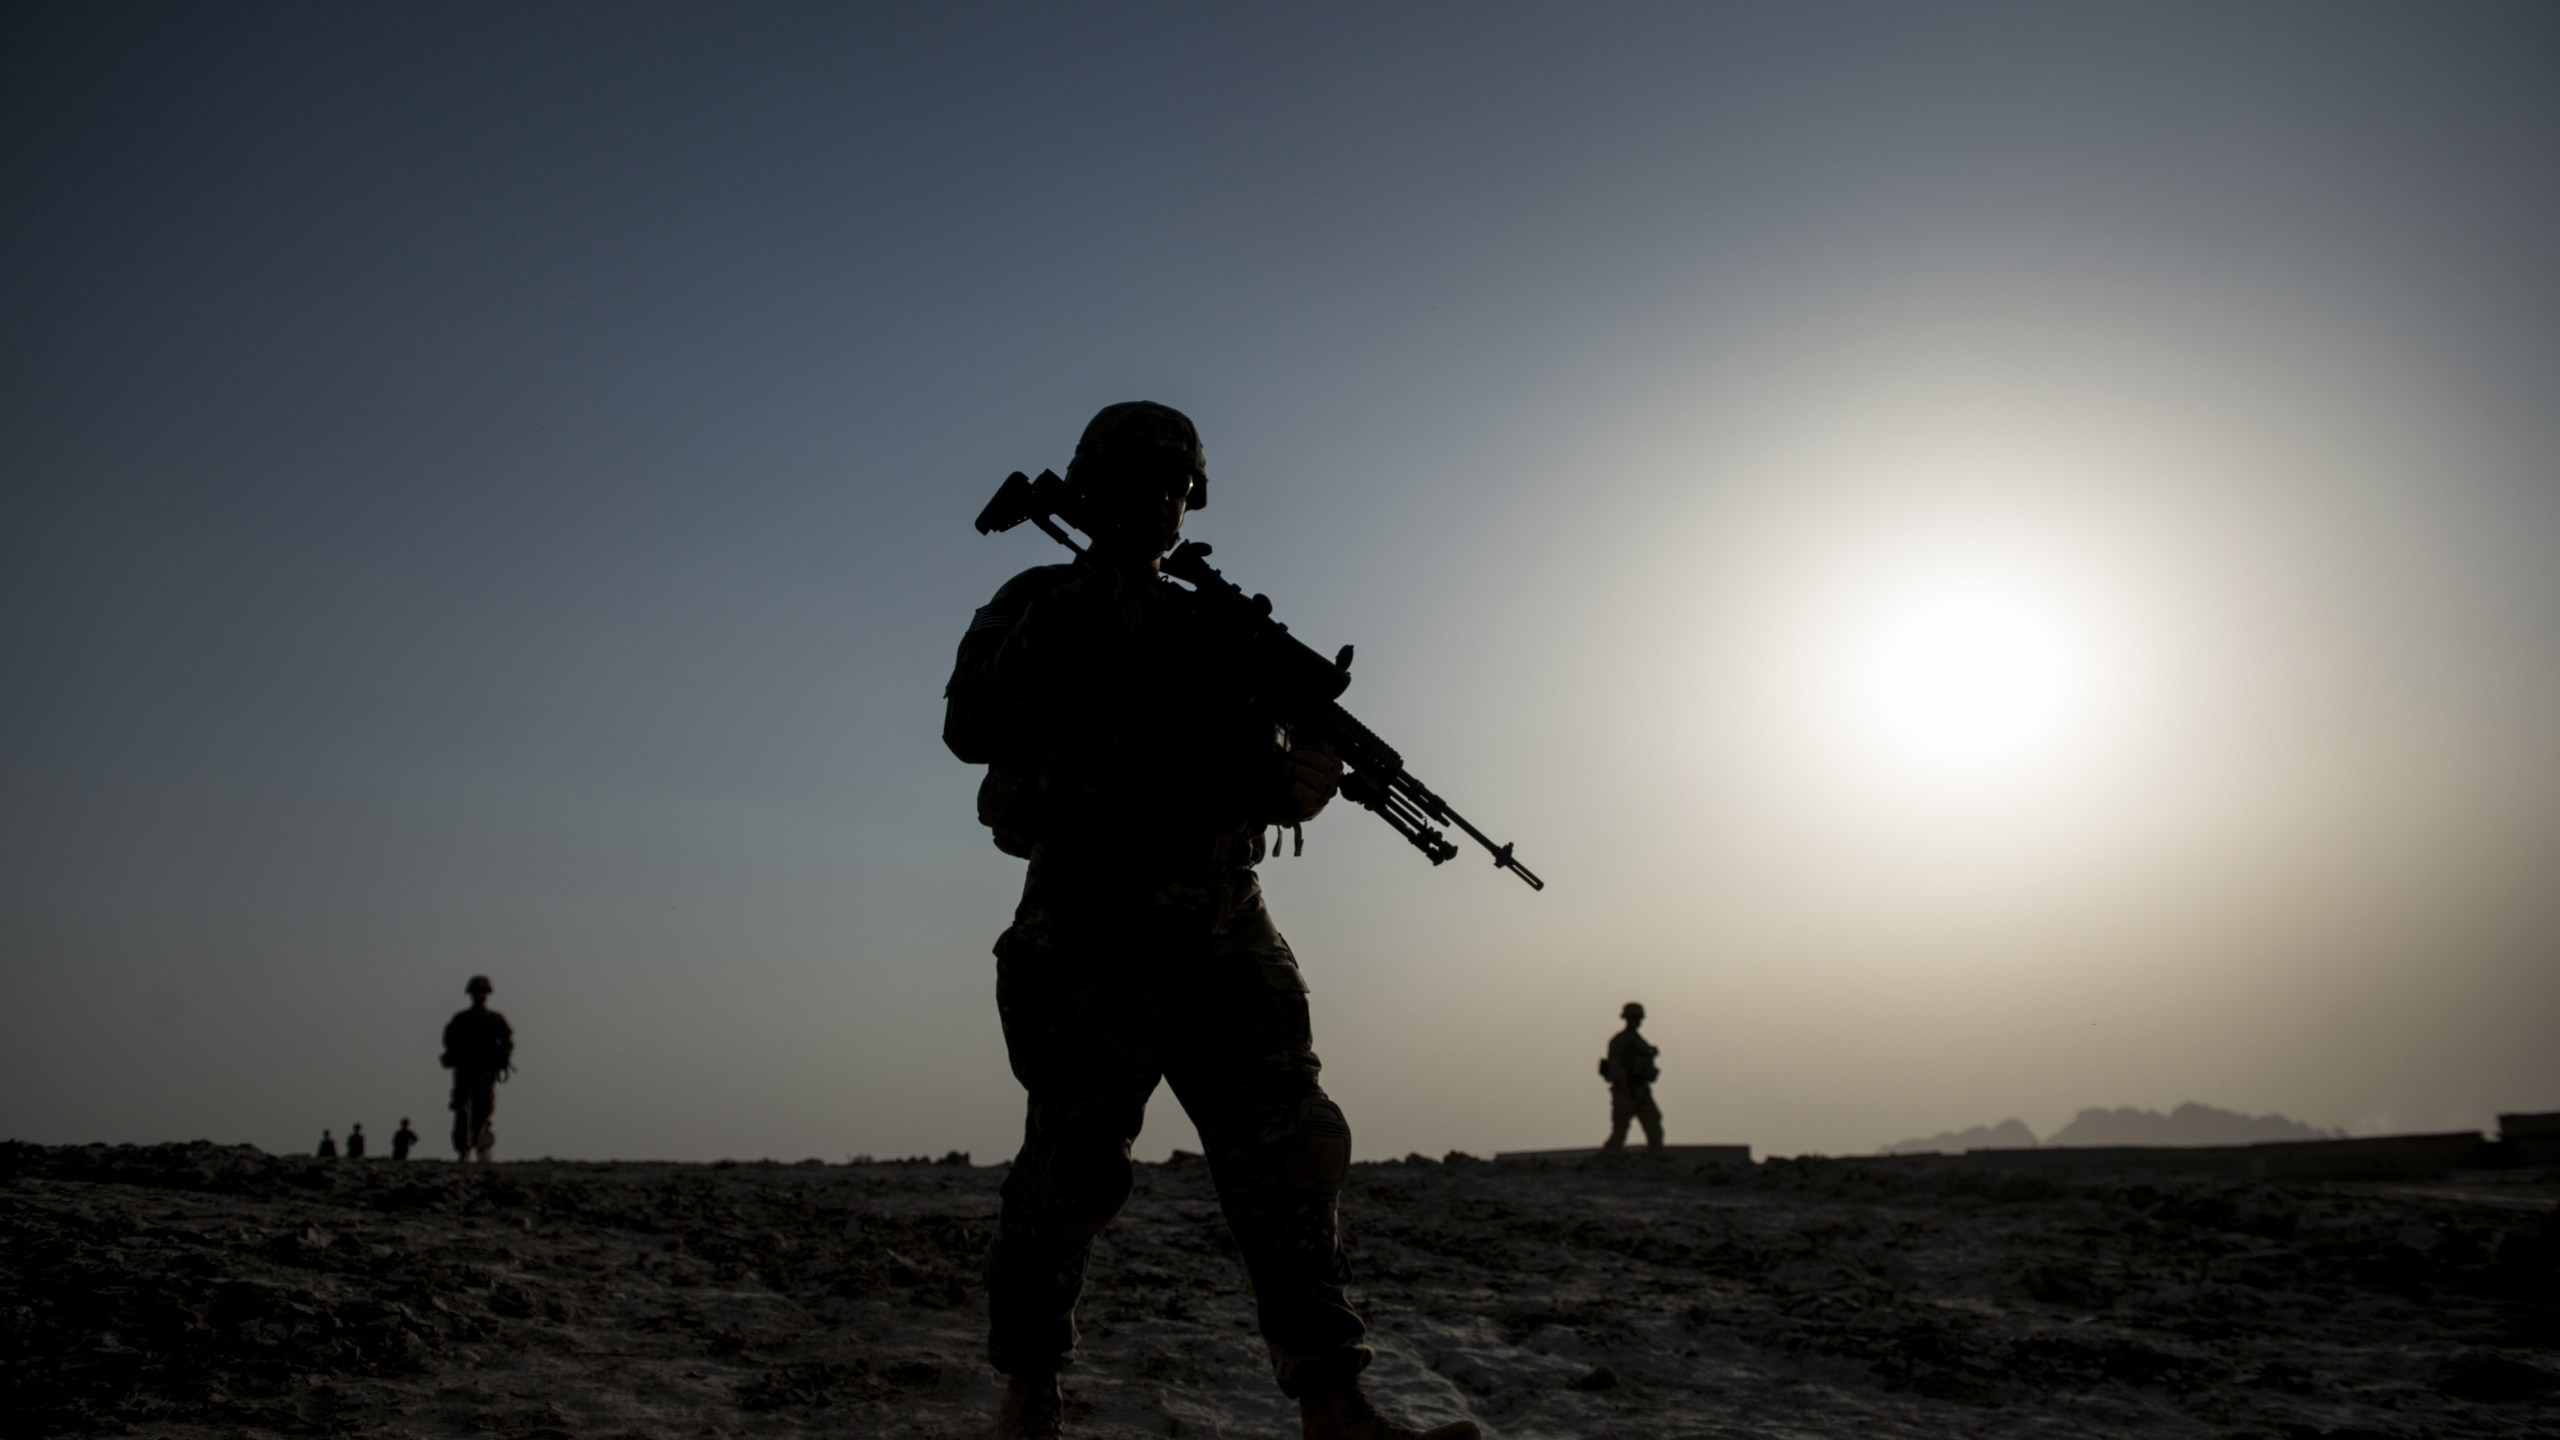 U.S. soldiers patrol near Kandahar Airfield on June 3, 2014. (Credit: BRENDAN SMIALOWSKI/AFP/Getty Images)